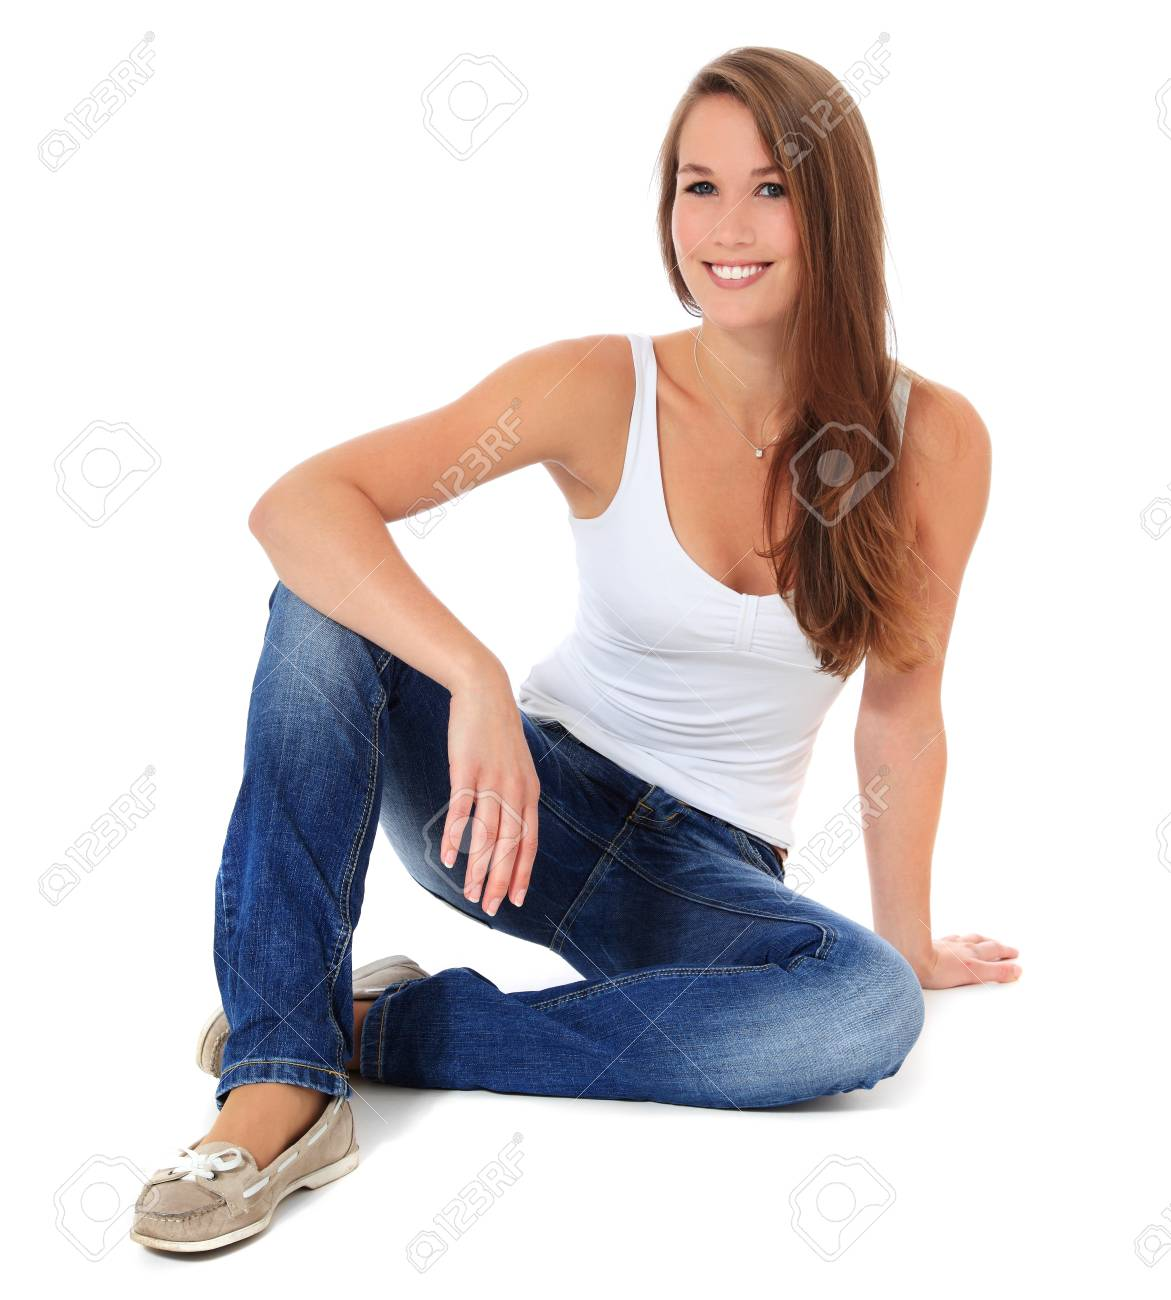 Attractive young woman. All on white background. Stock Photo - 10118720